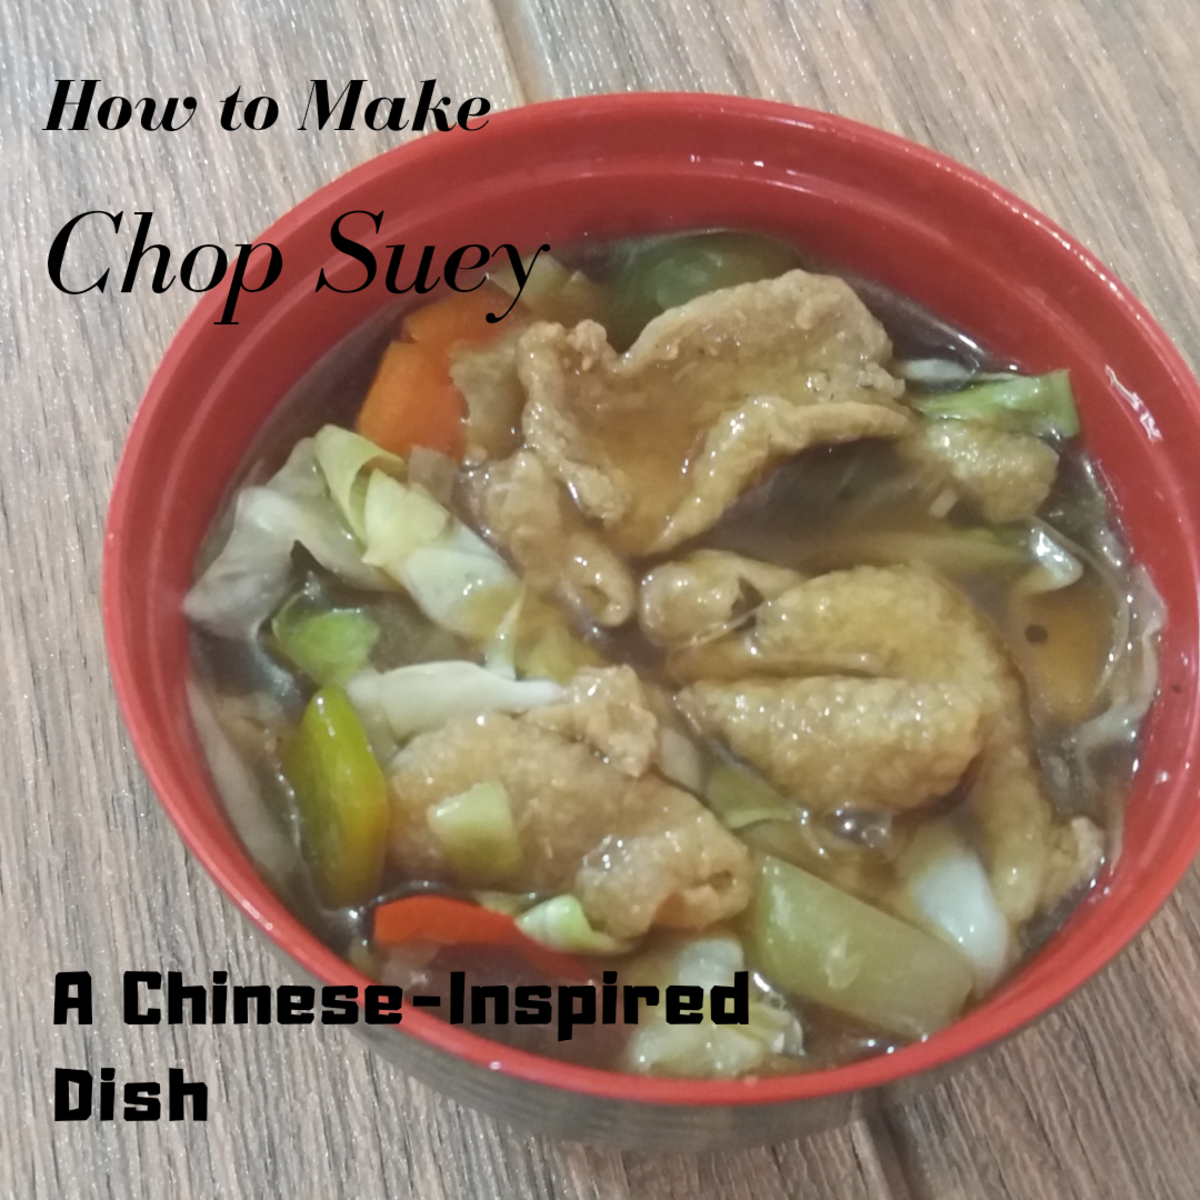 How to Make Chop Suey: A Chinese-Inspired Dish